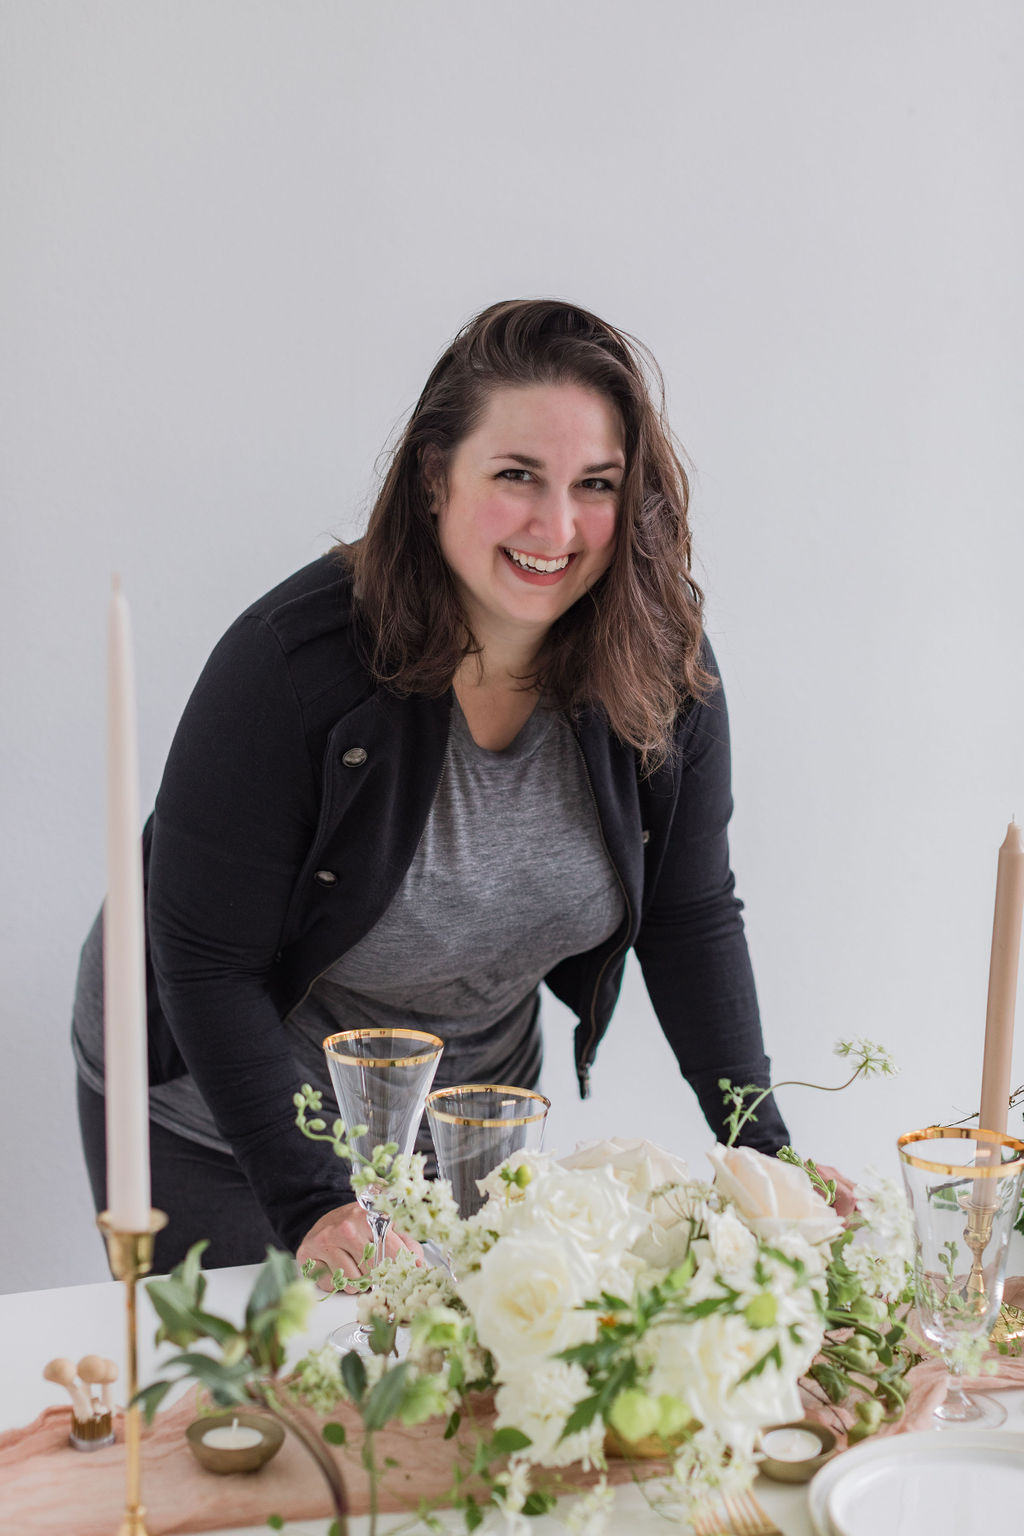 Folk Art Flowers owner Carolyn Kulb leans over a wedding table full of flowers, golden-rimmed glassware, and neutral candles